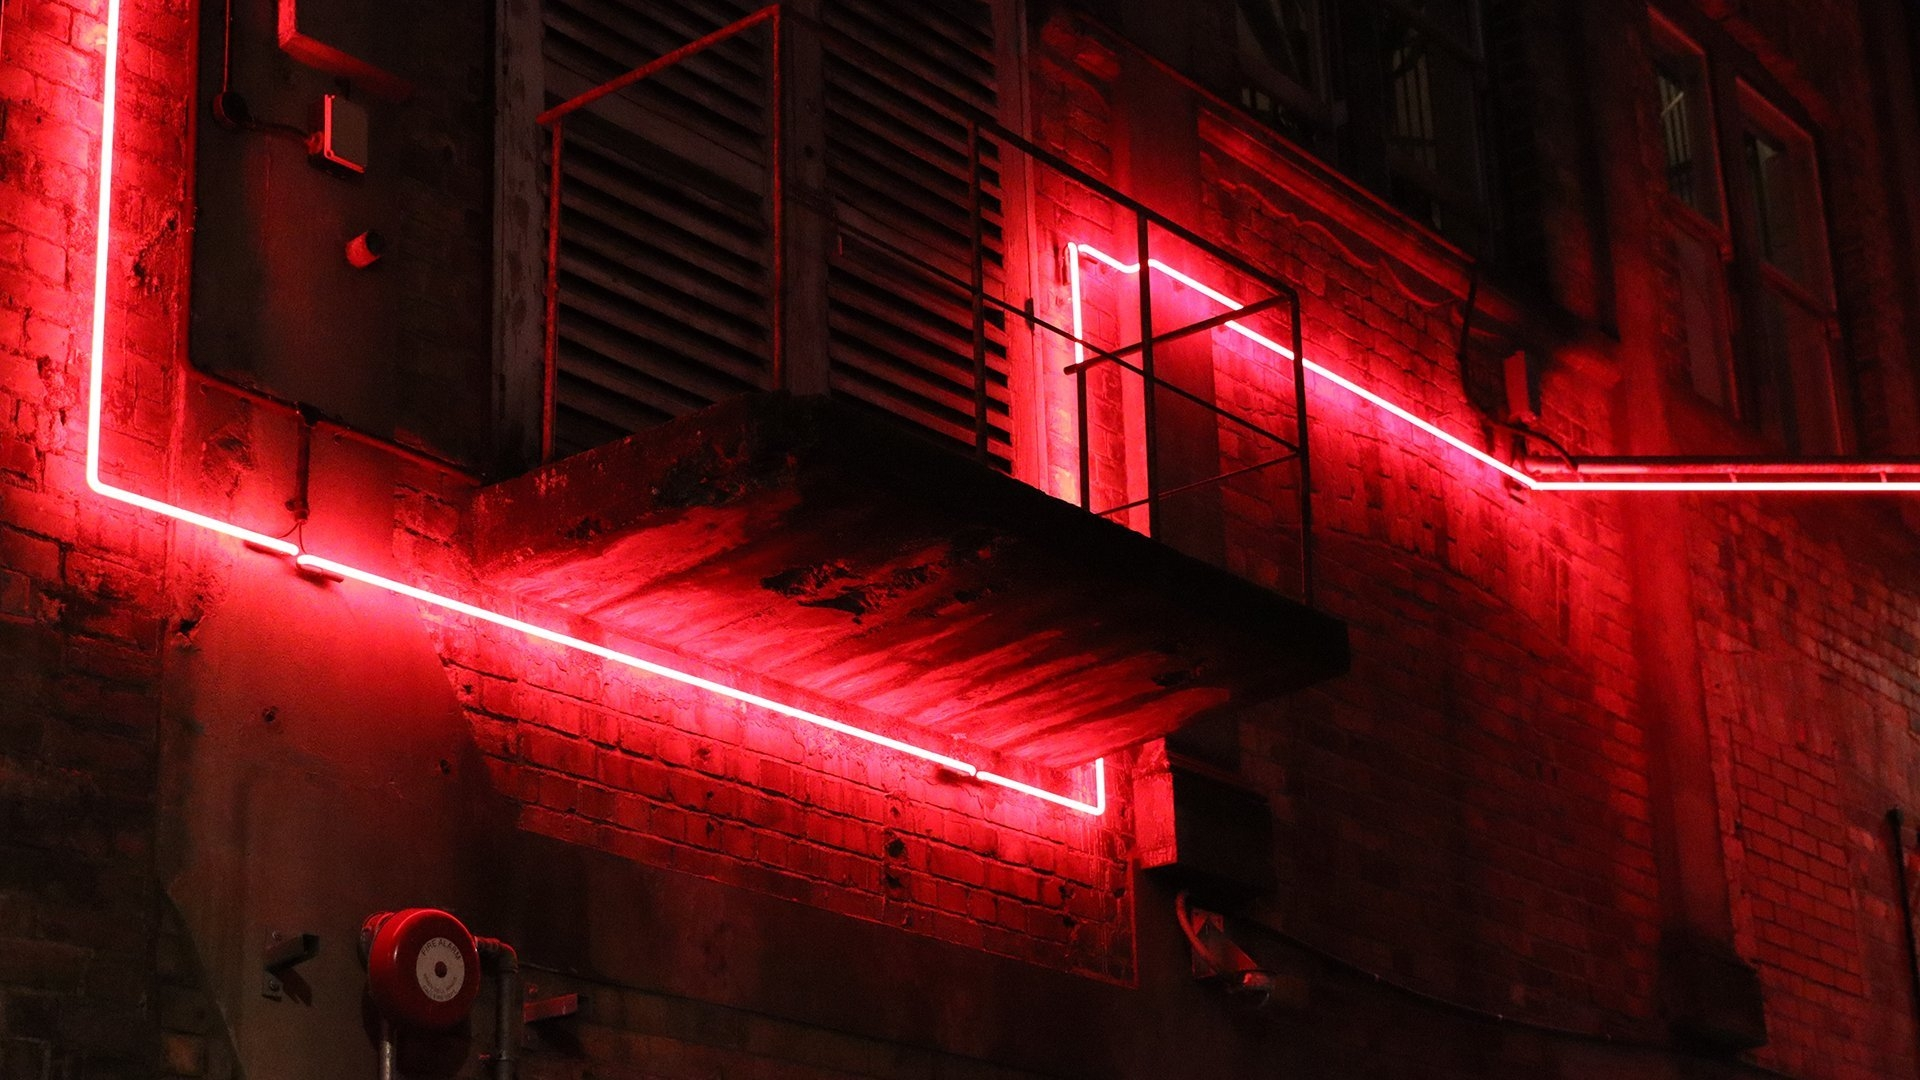 Urban scene with red lighting